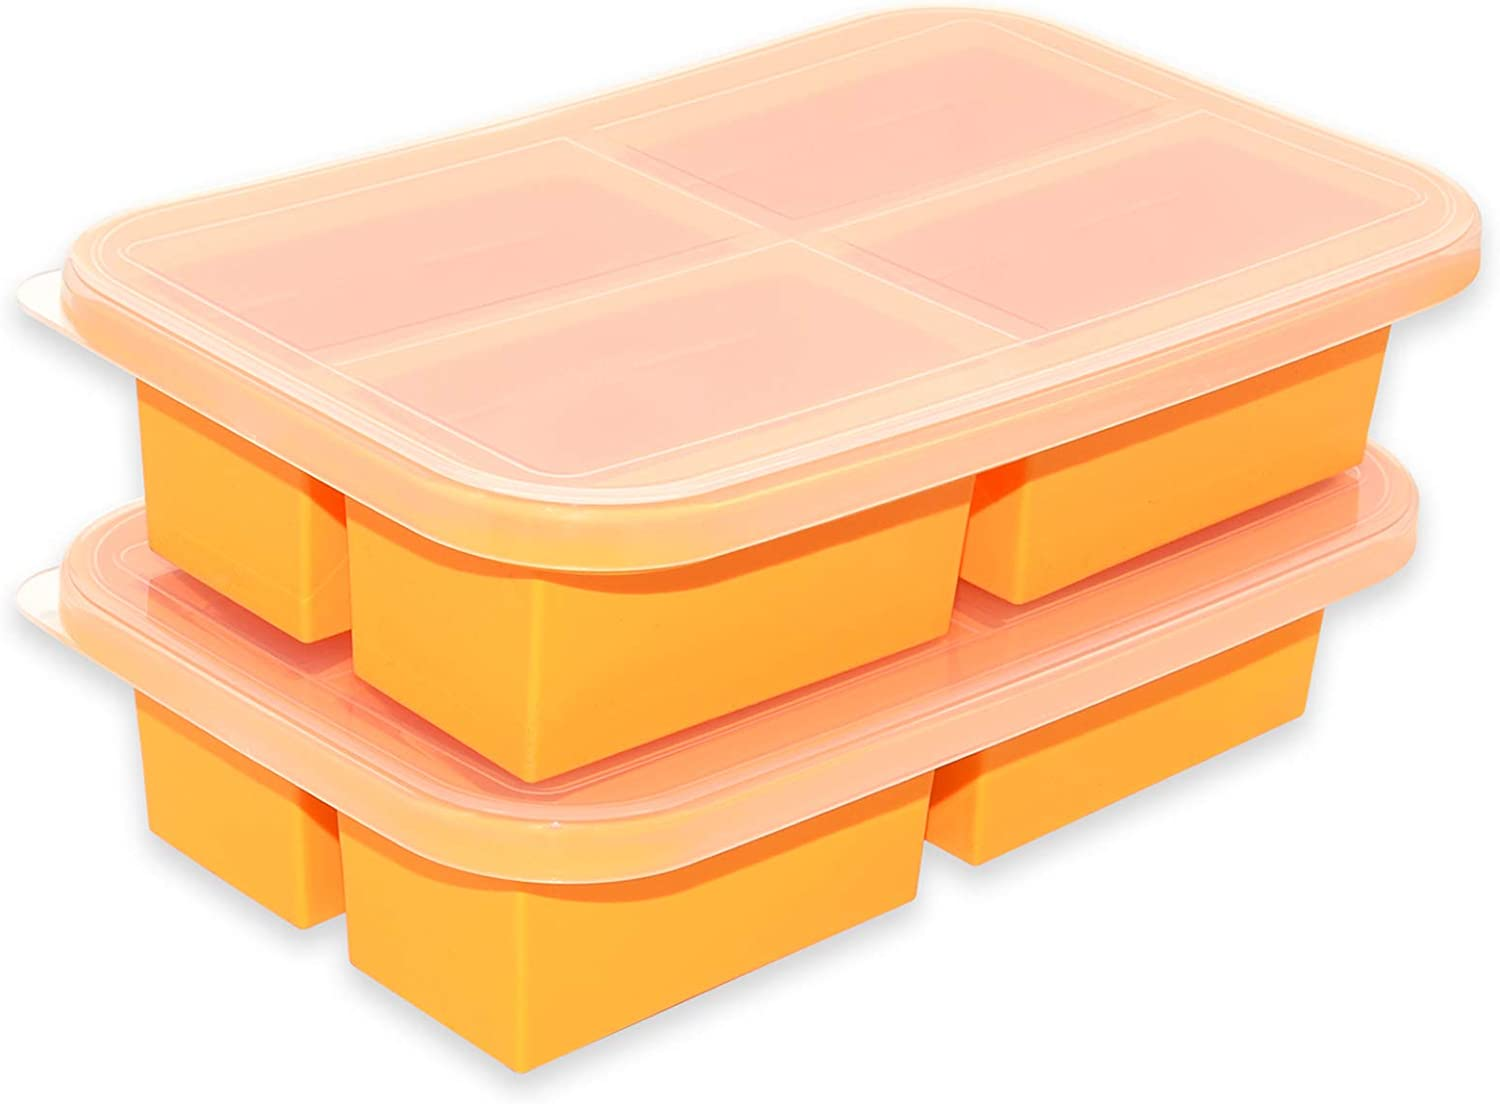 Bangp Extra-Large Silicone Freezing Tray with Lid - Soup Containers for Freezing,Storage - Large Ice Cube Tray -2 Pack- Makes 8 Perfect 1 Cup Portions - Freeze Food Soup Broth or Sauce